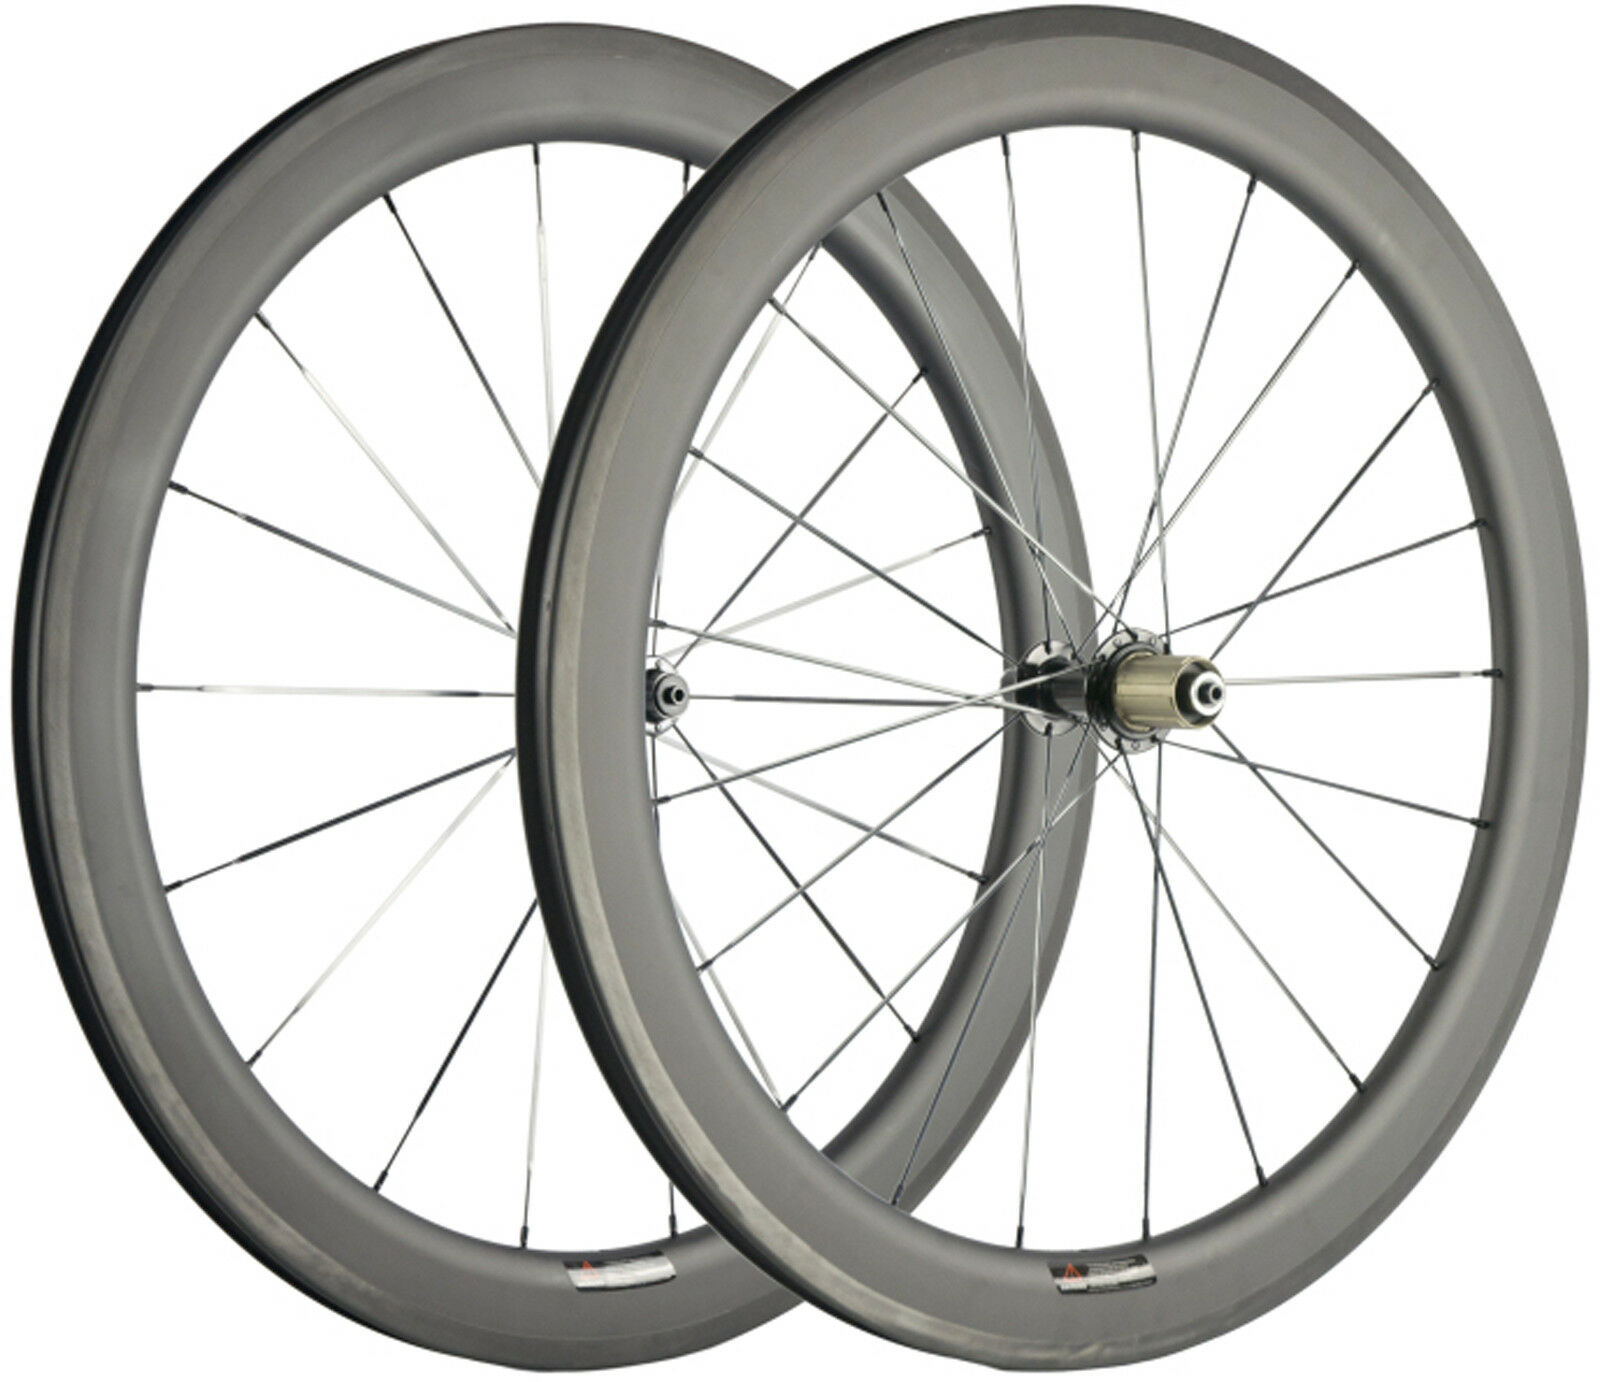 Carbon Wheels Road Bike Clincher 45mm Depth  Carbon Wheelset Shimnao Campagnolo  hot sales